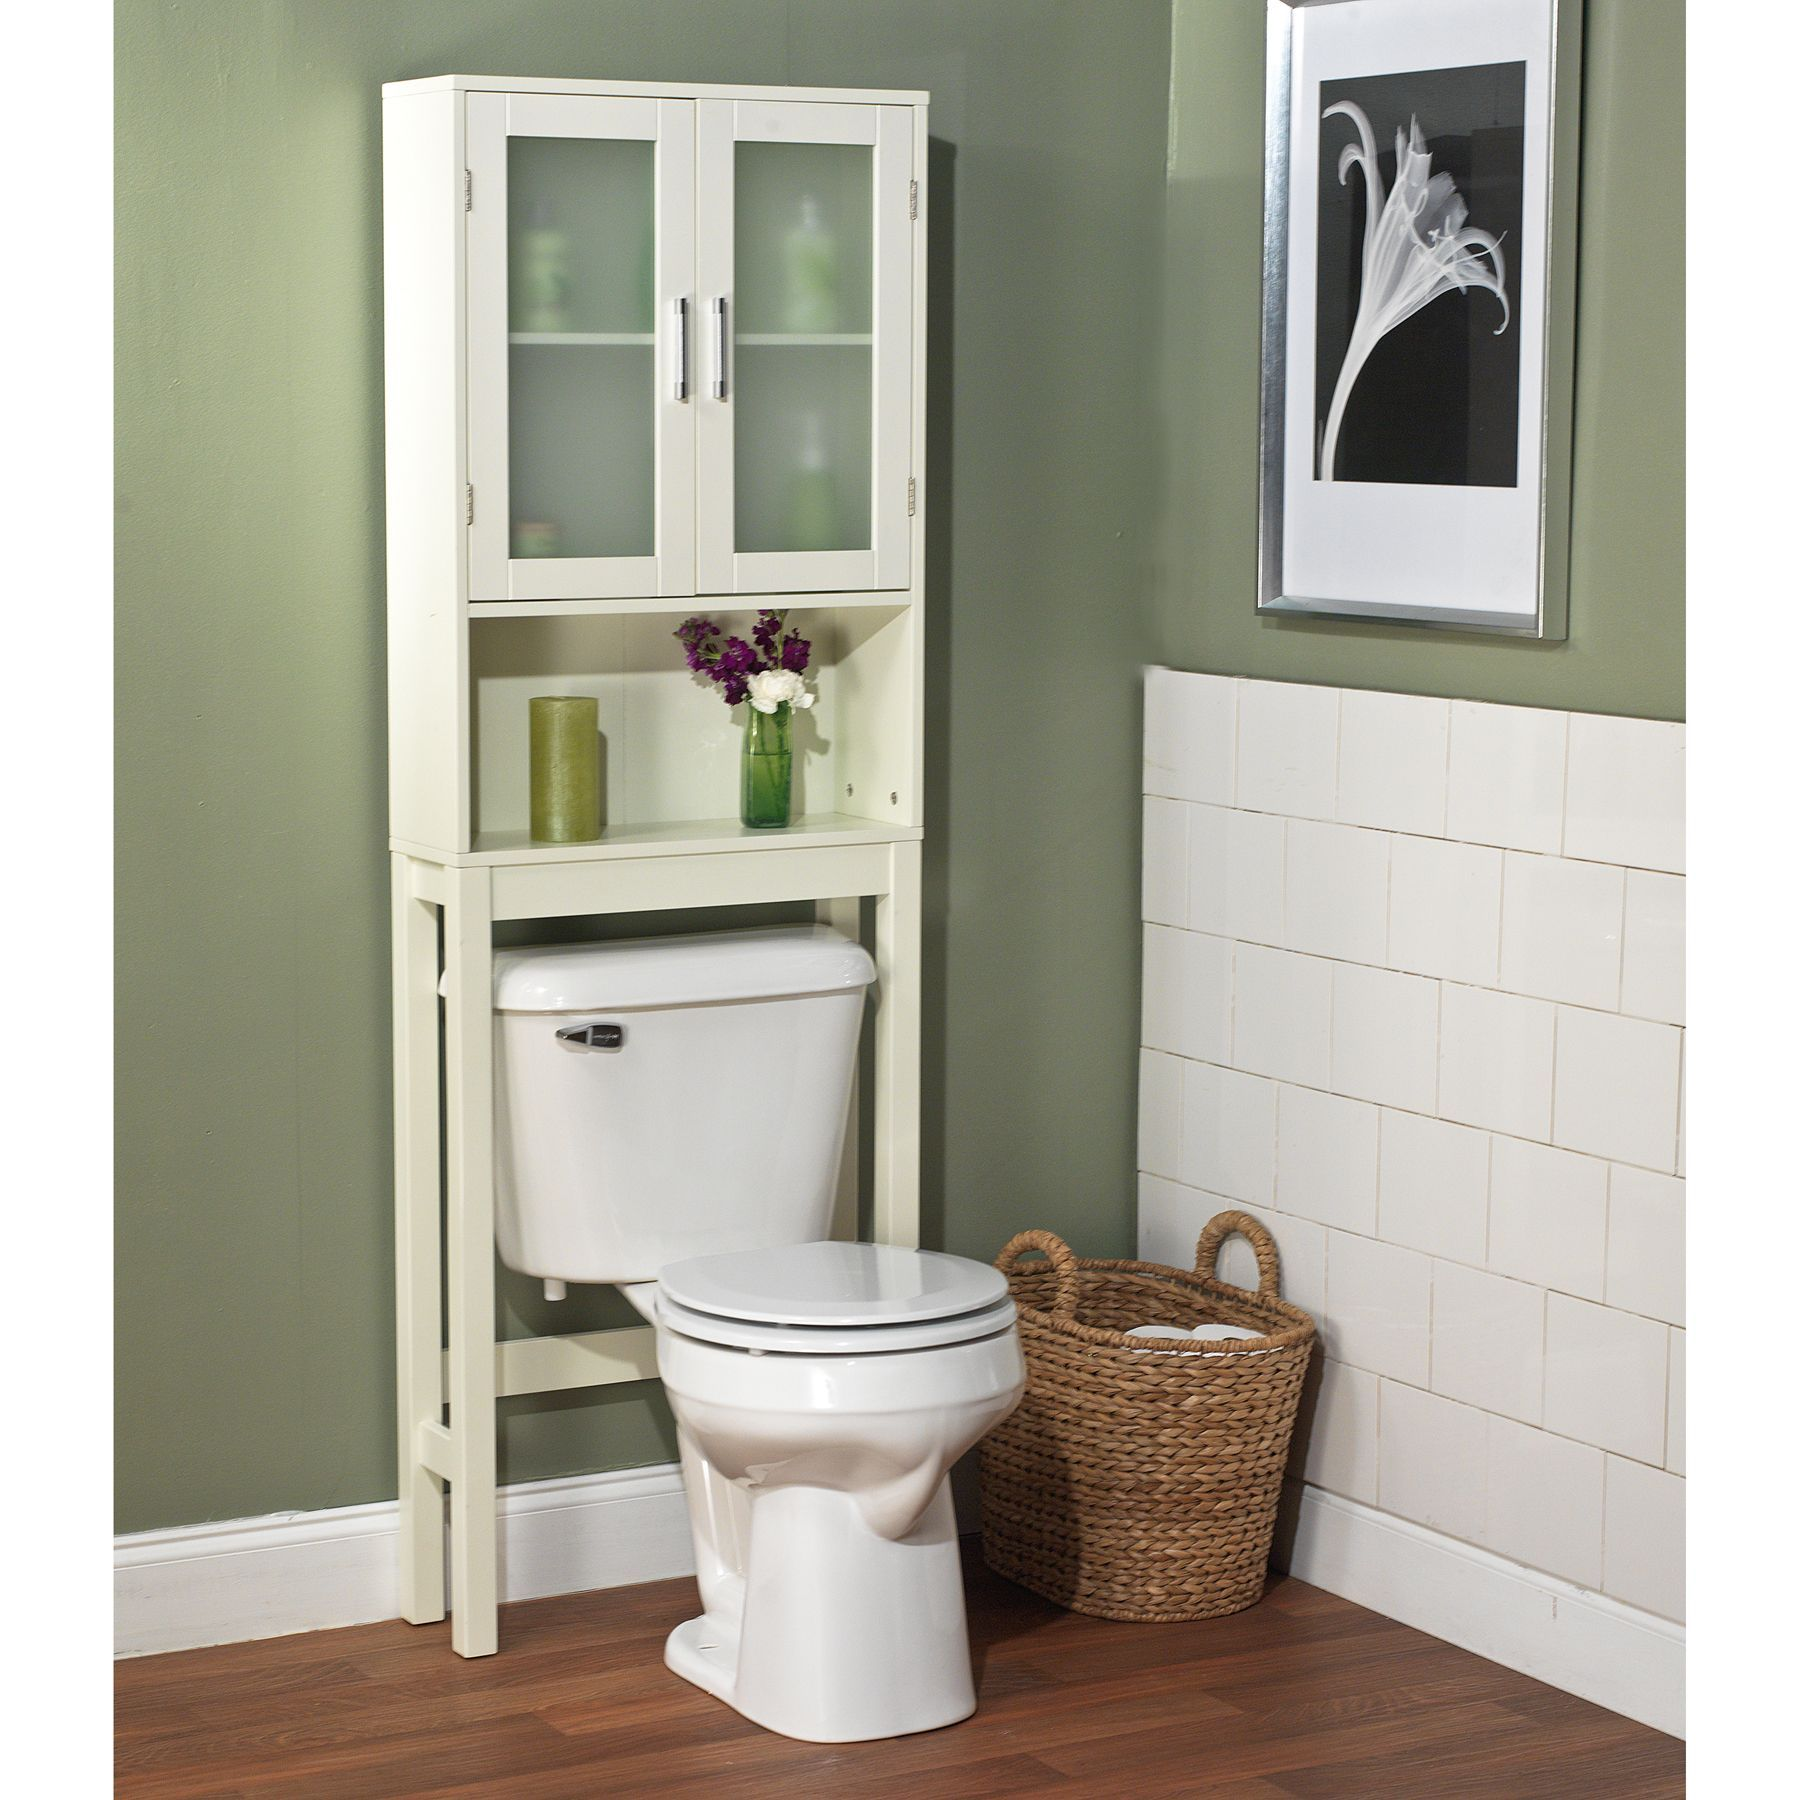 Place this white bathroom space saver around the toilet and add